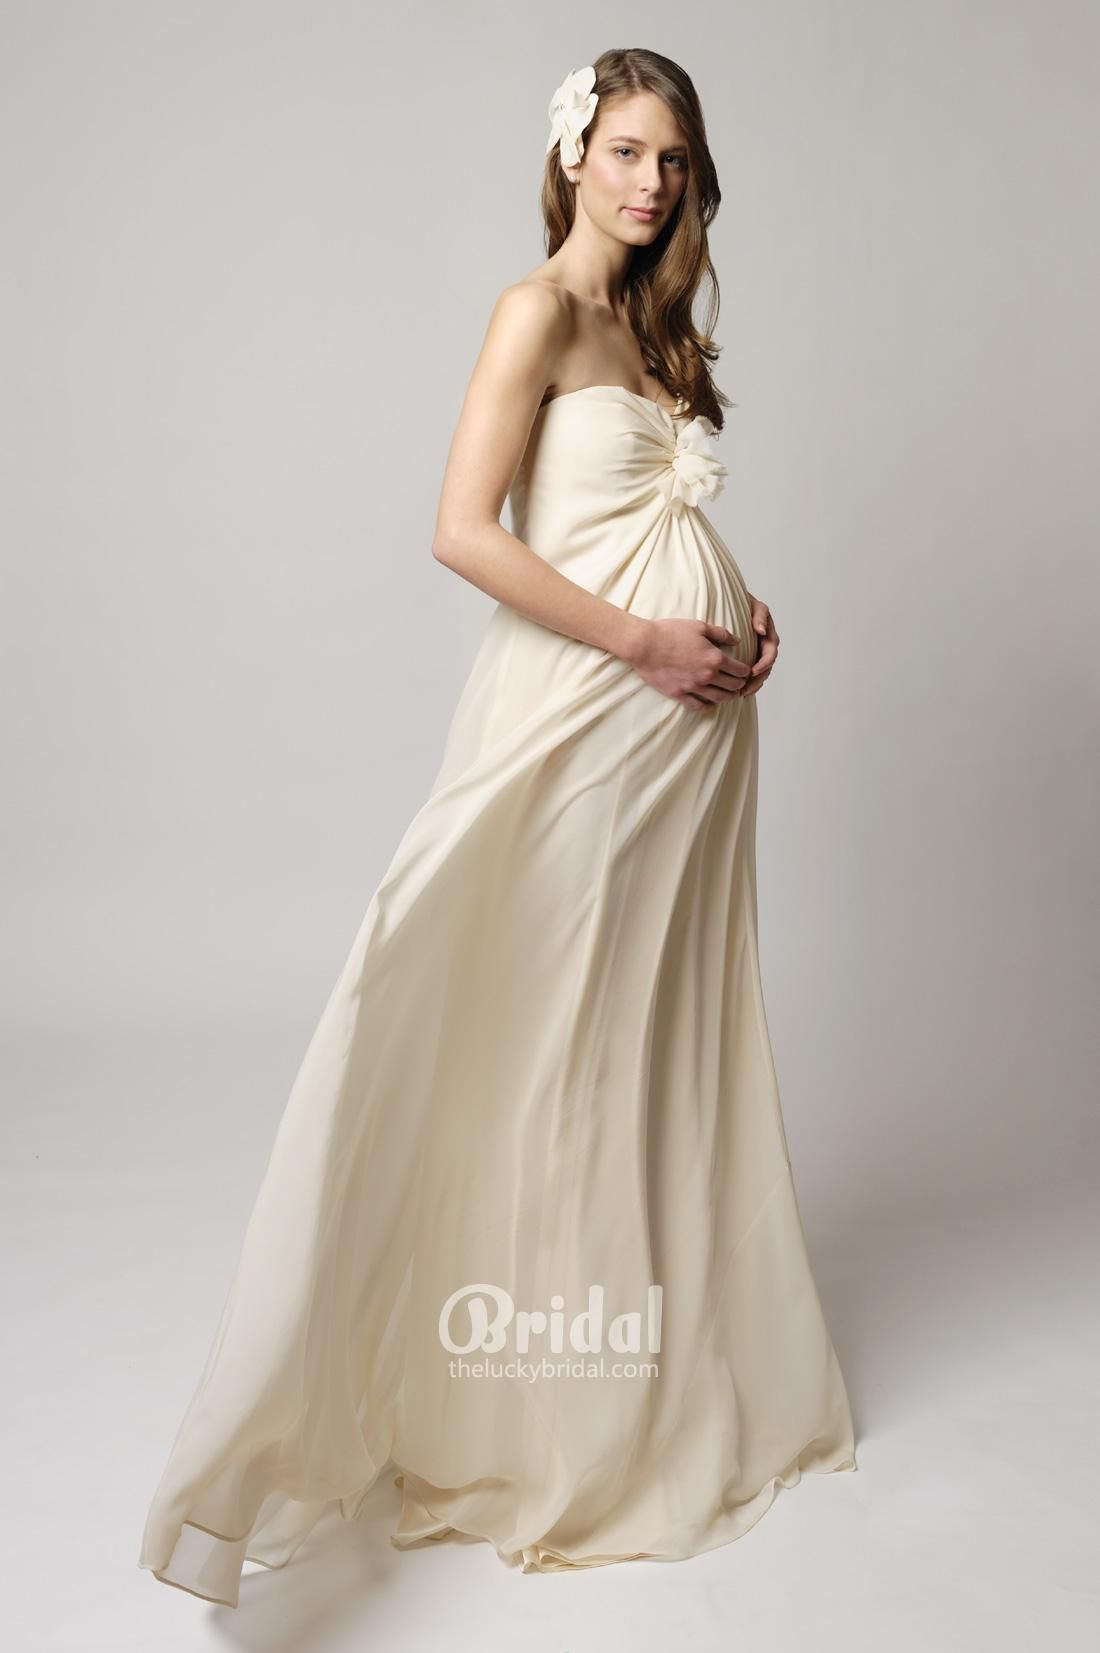 Princess strapless chiffon maternity wedding dress with gathers tina mak has just launched a beautiful bridal range of maternity bridal gowns perfect for pregnant brides but the secret is the gowns are just as suitable ombrellifo Image collections